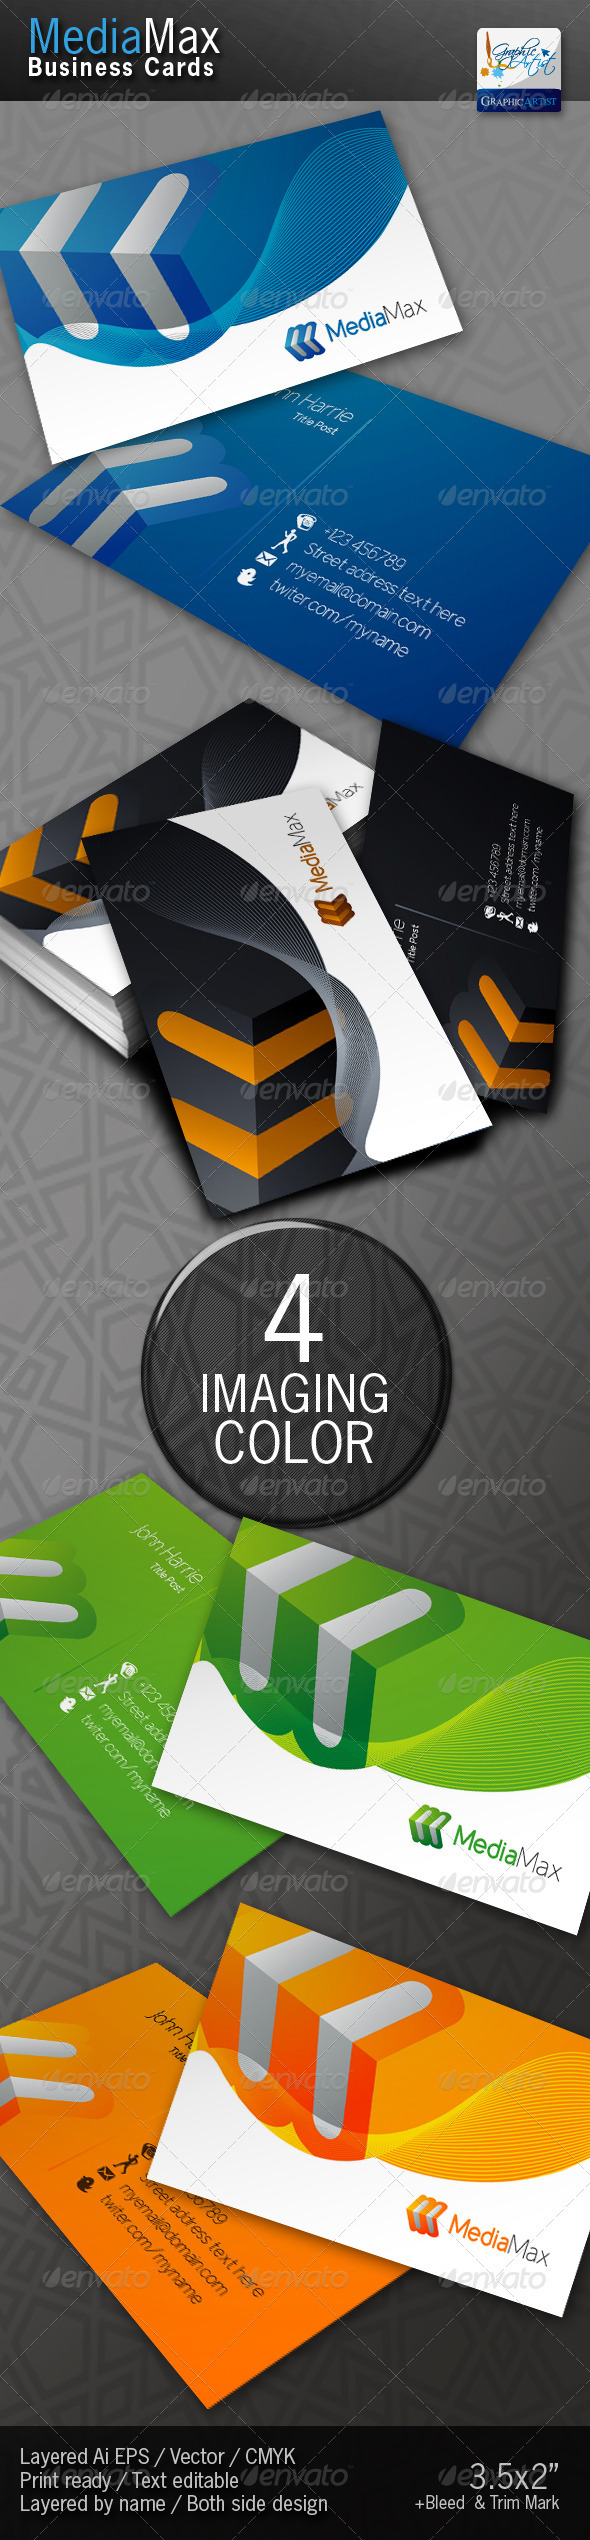 MediaMax Business Cards - Corporate Business Cards